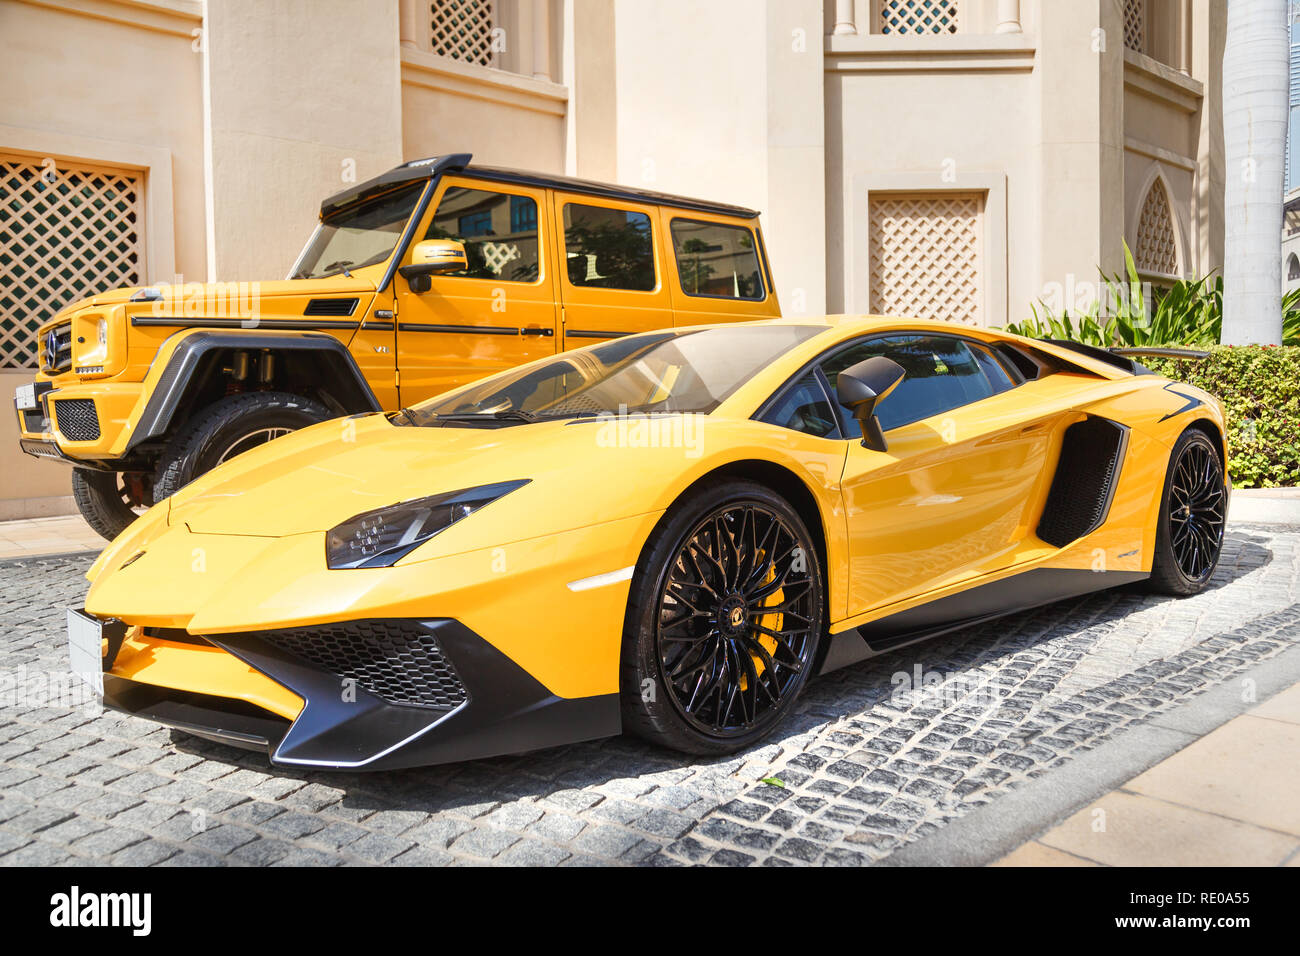 Dubai Uae January 08 2019 Yellow Luxury Supercar Lamborghini